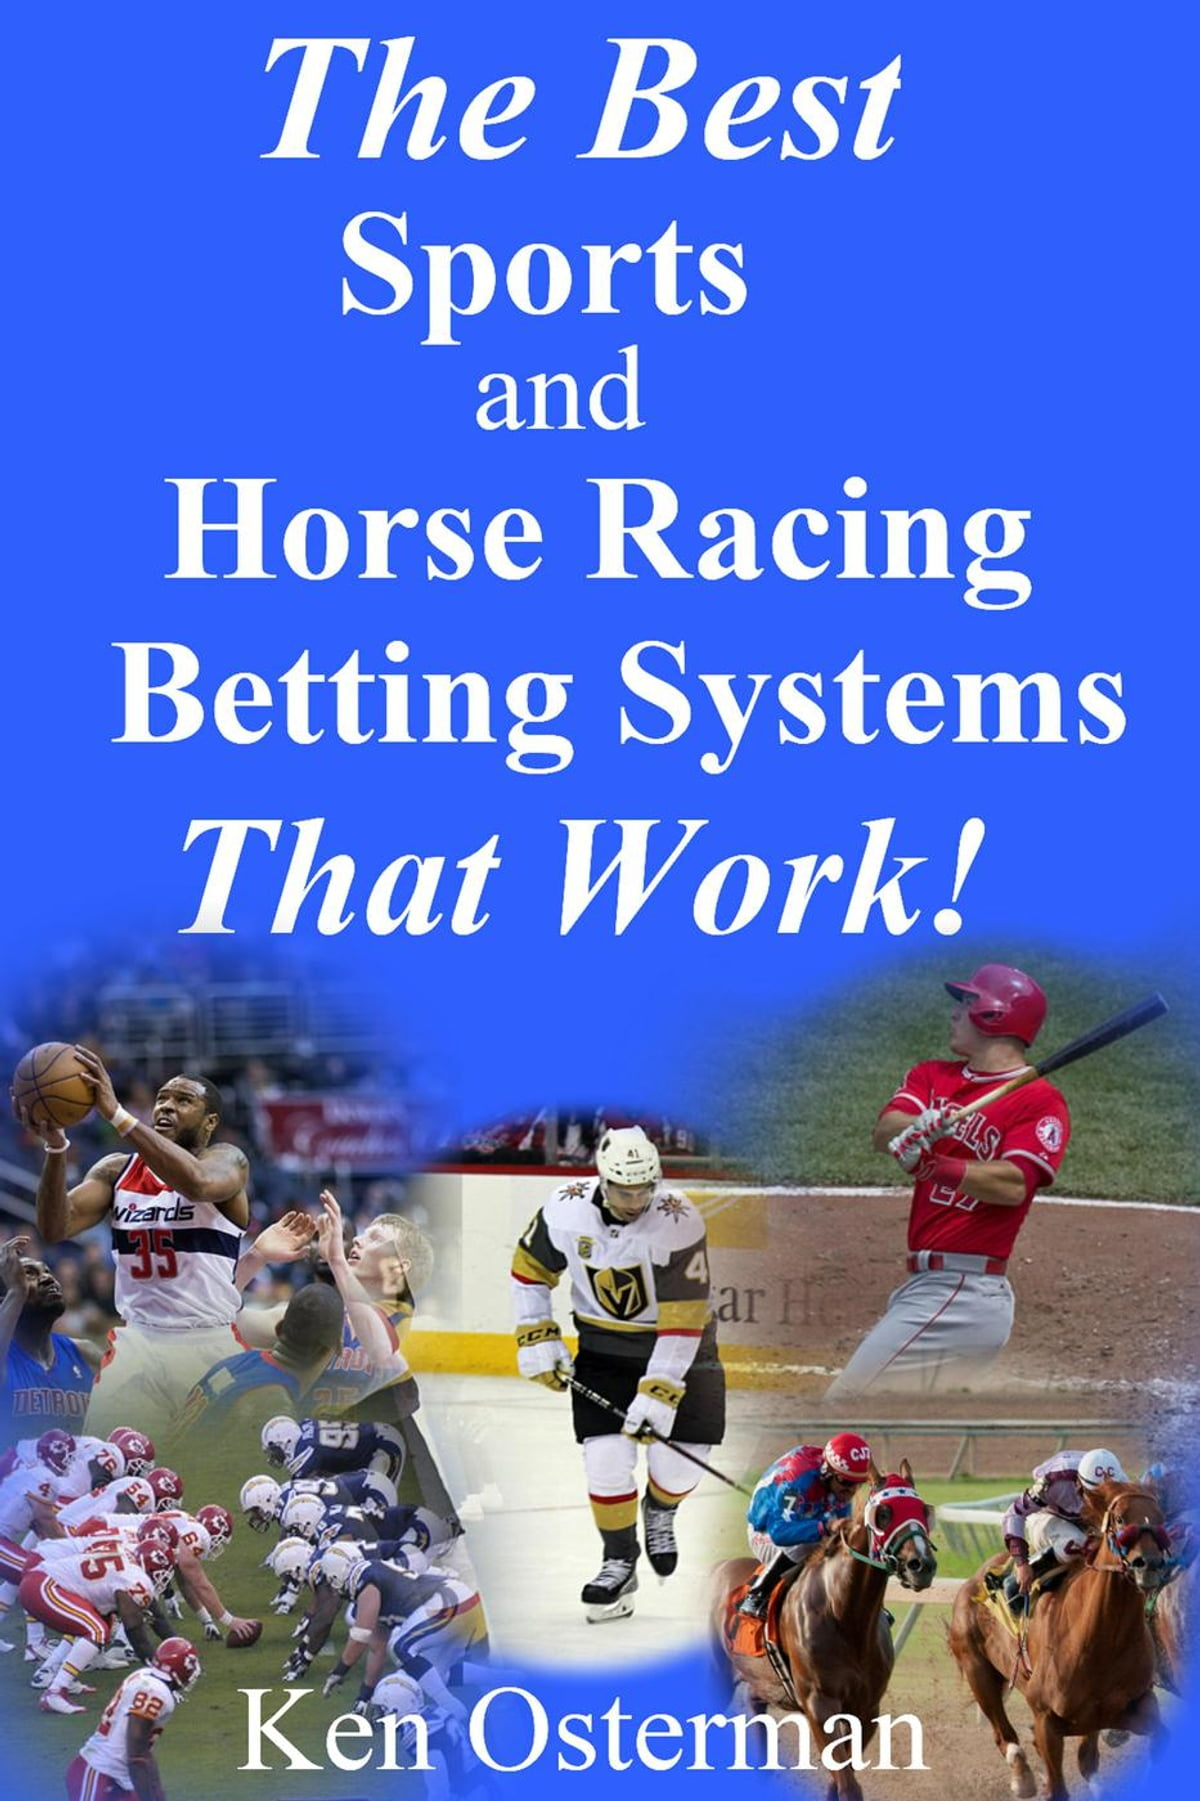 Horse betting systems that work in play soccer betting prediction